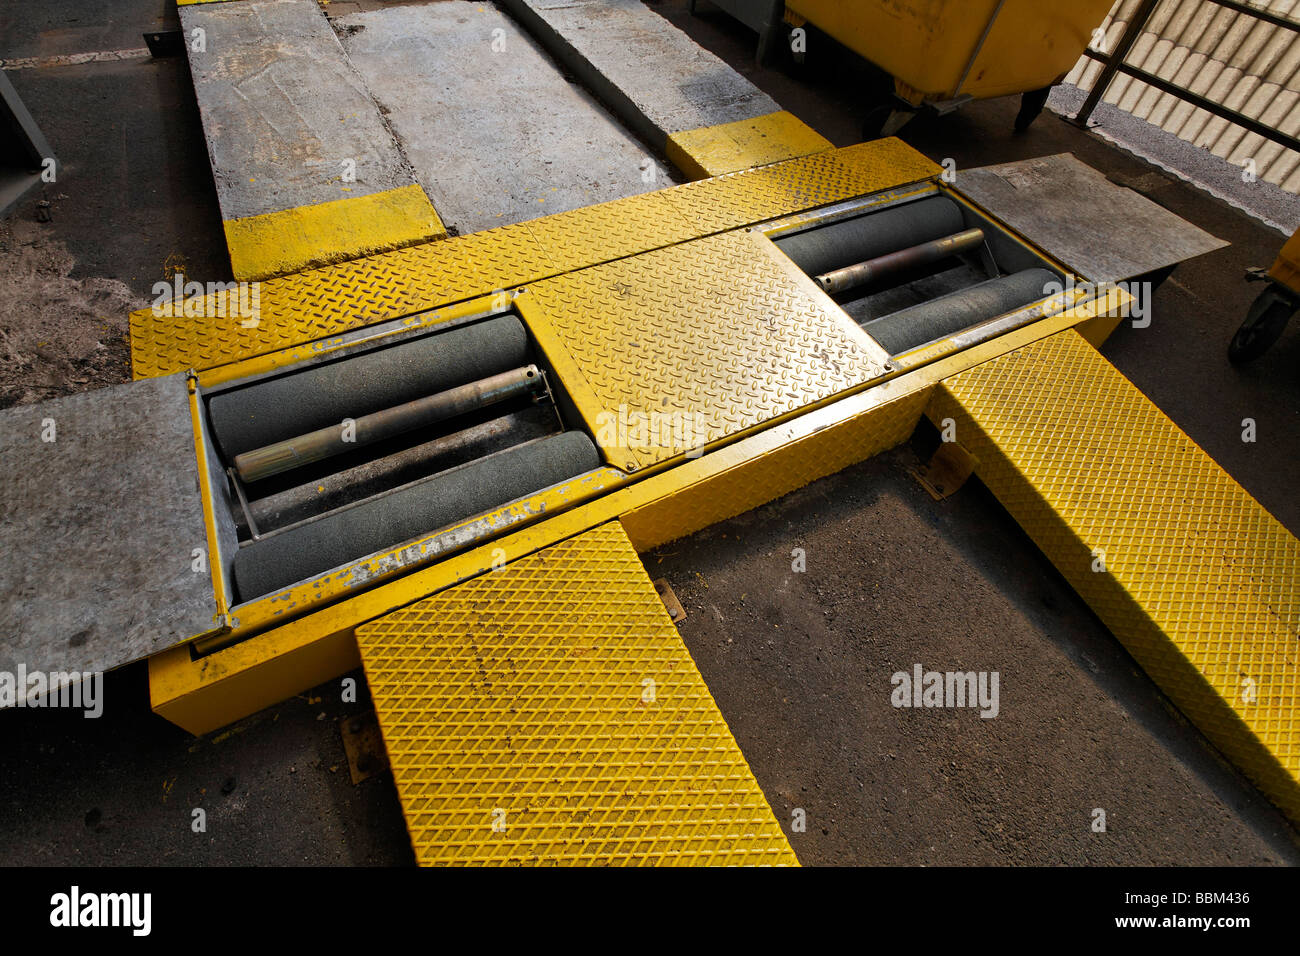 Test stand for car brakes, ramp with rolls, MOT, Germany, Europe - Stock Image